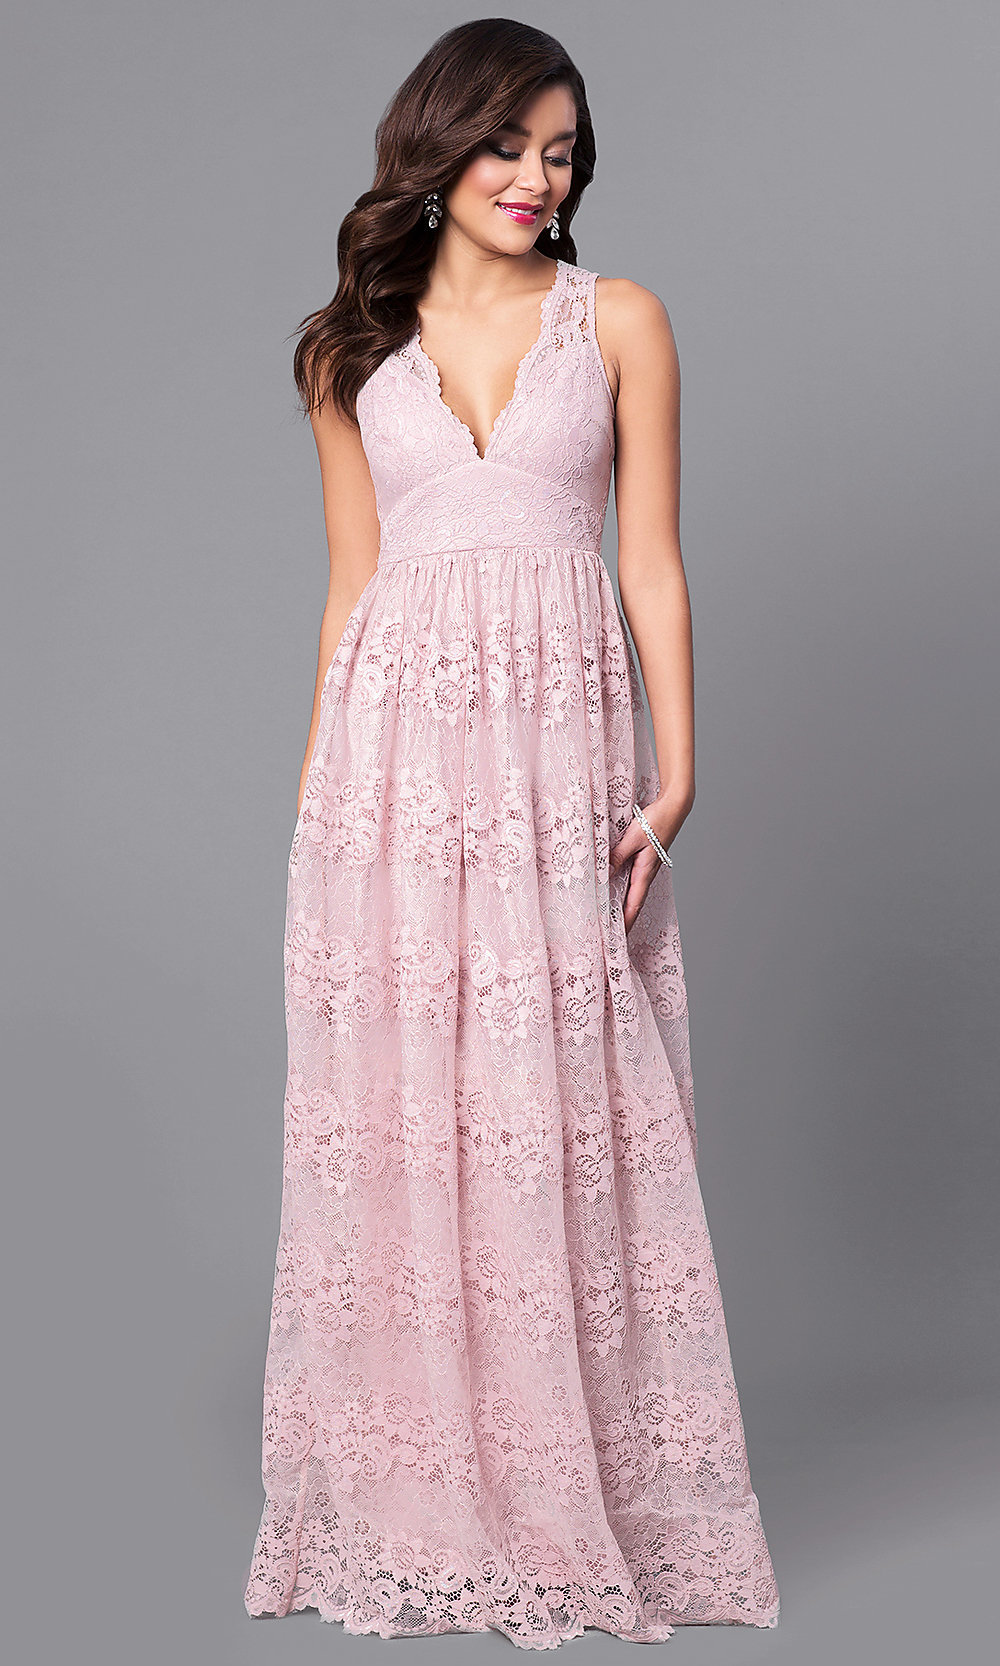 Formal Long Lace Prom Dress Under $200 - PromGirl Lace Prom Dresses